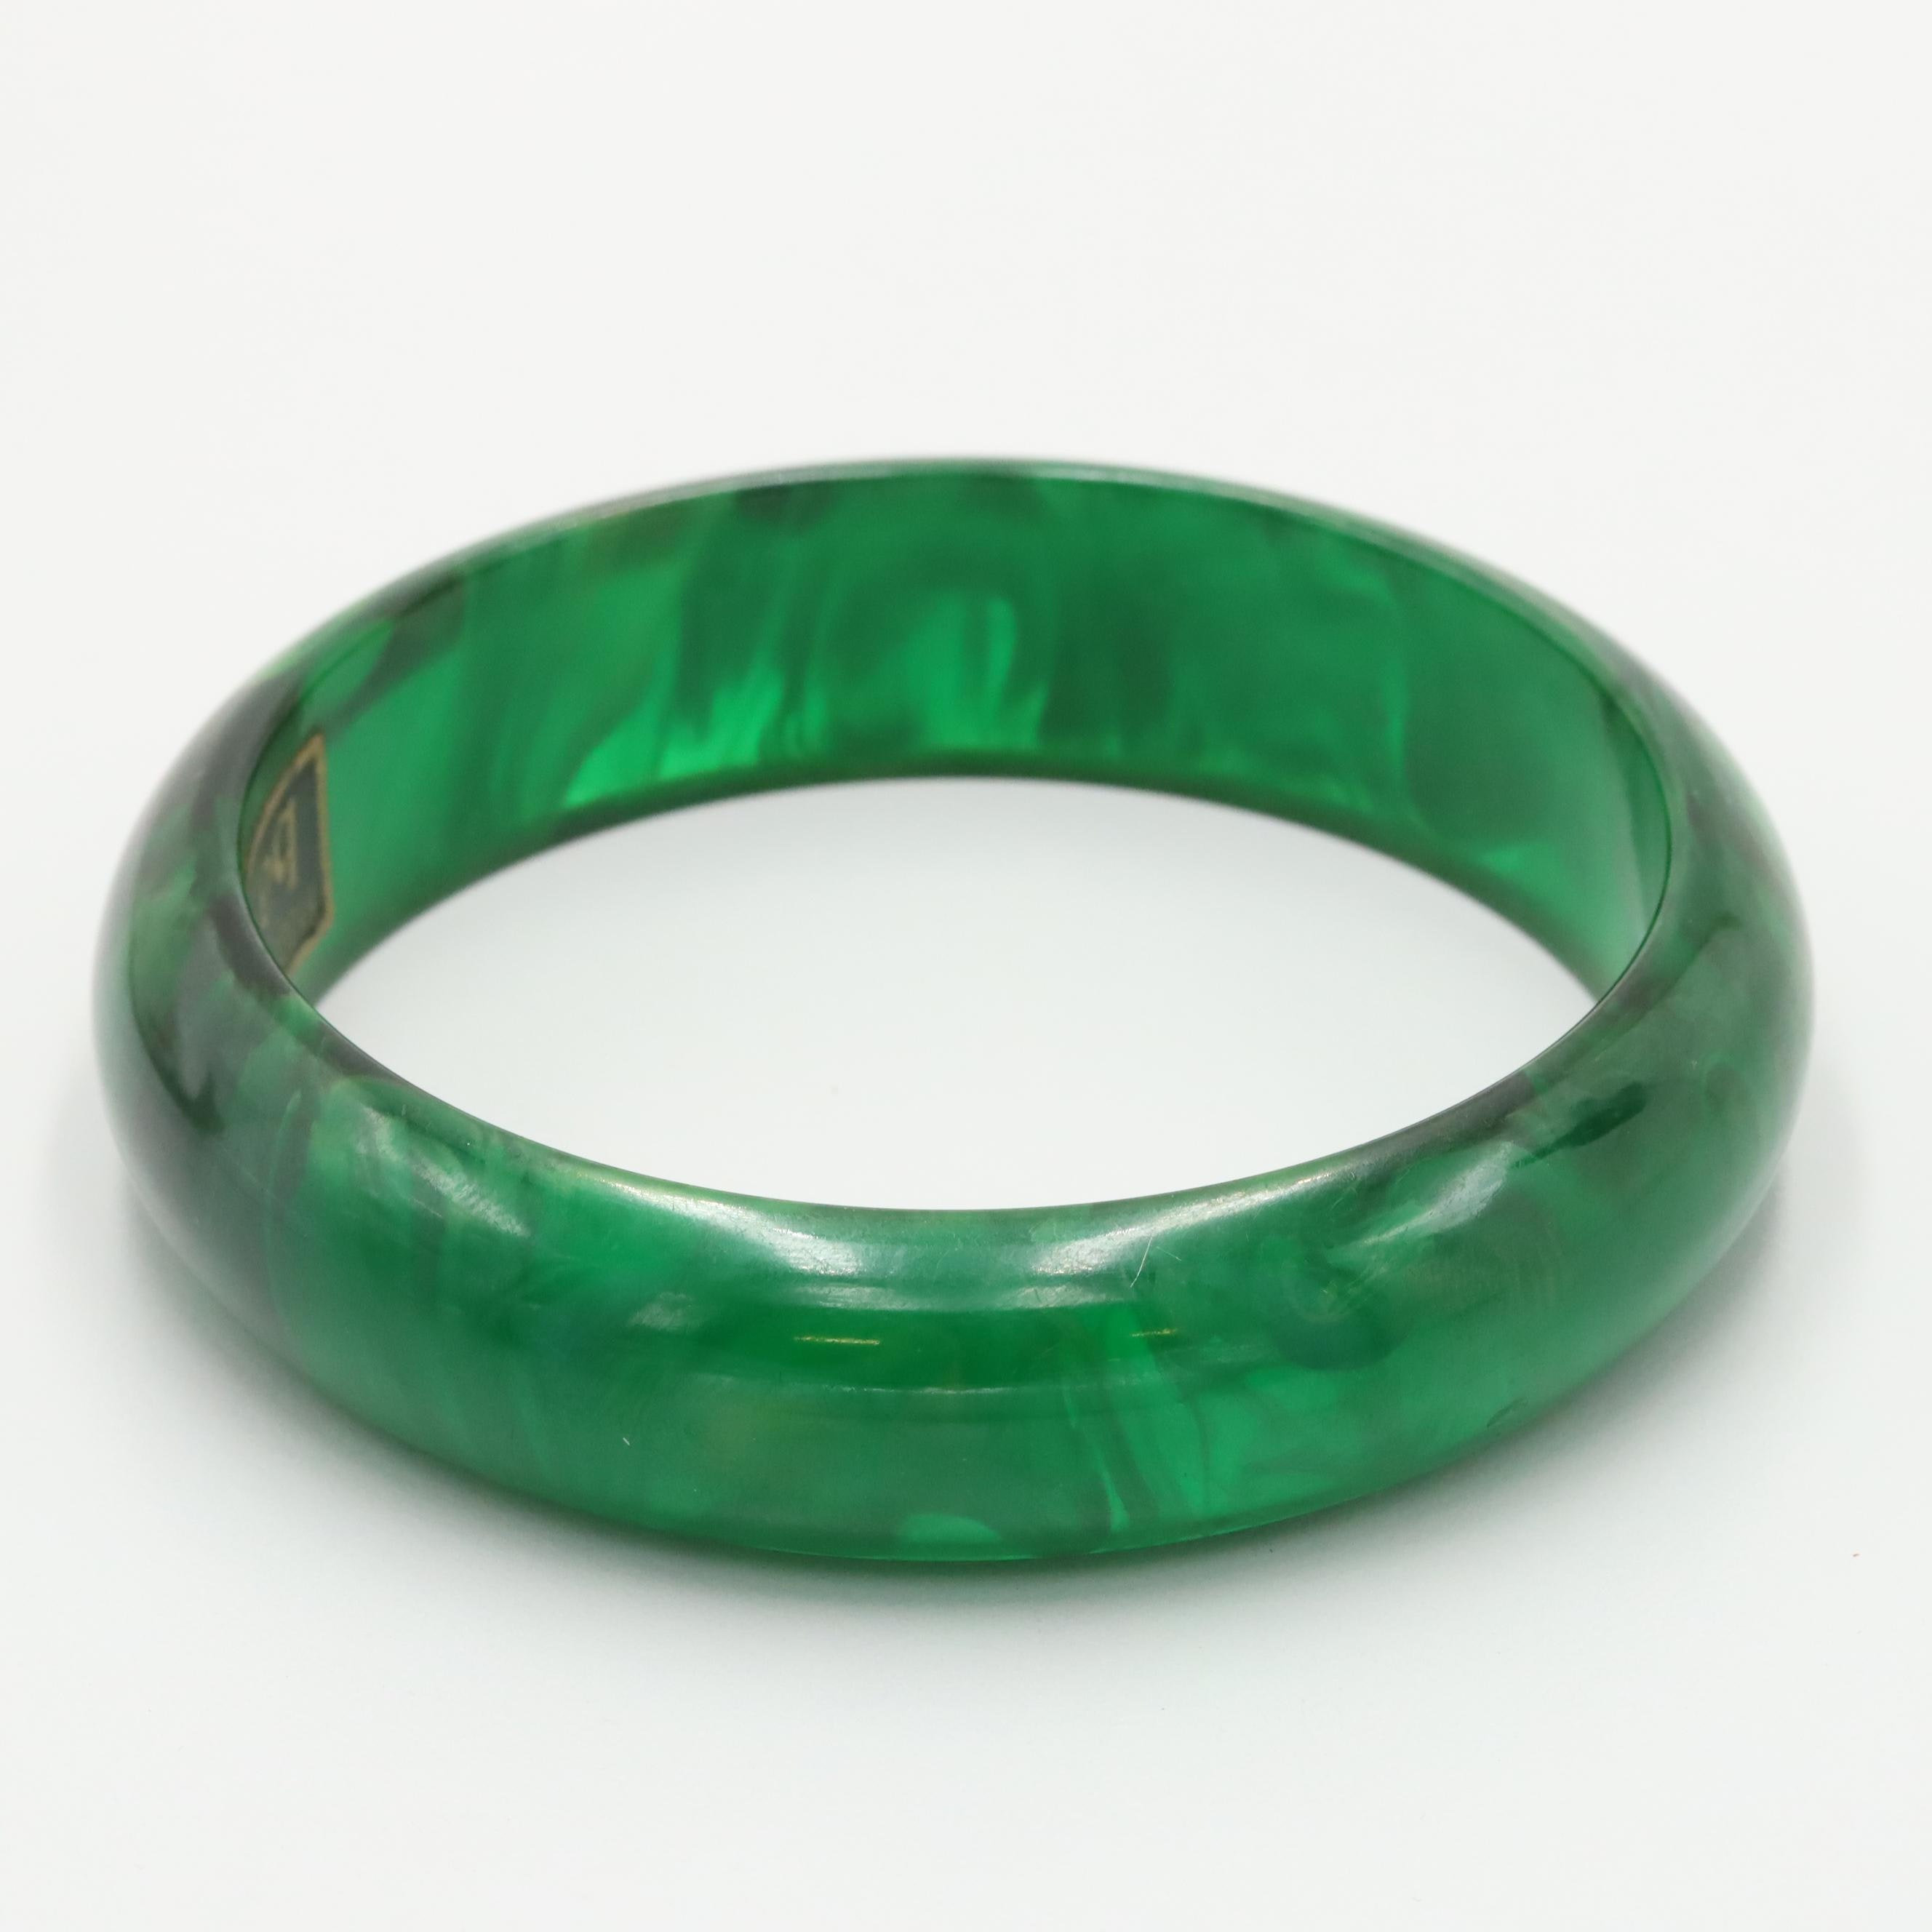 Baverel Green Marble Bakelite Bangle